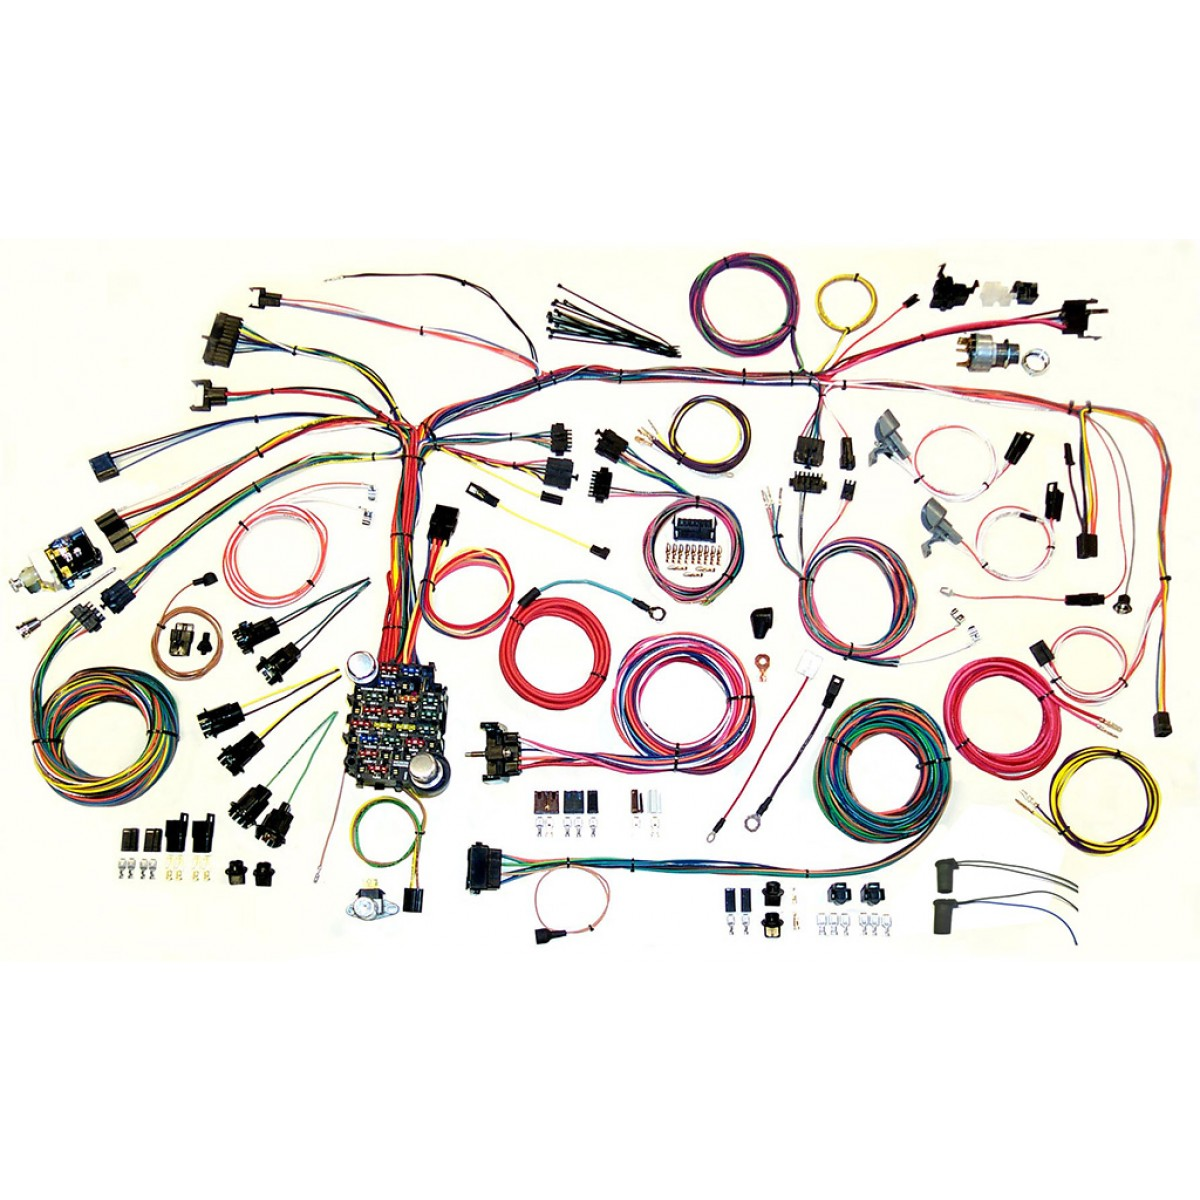 firebird wire harness complete wiring harness kit 1967 1968 firebird part 500886 1967 1968 pontiac firbird complete wiring harness kit 1967 1967 firebird wiring harness at edmiracle.co